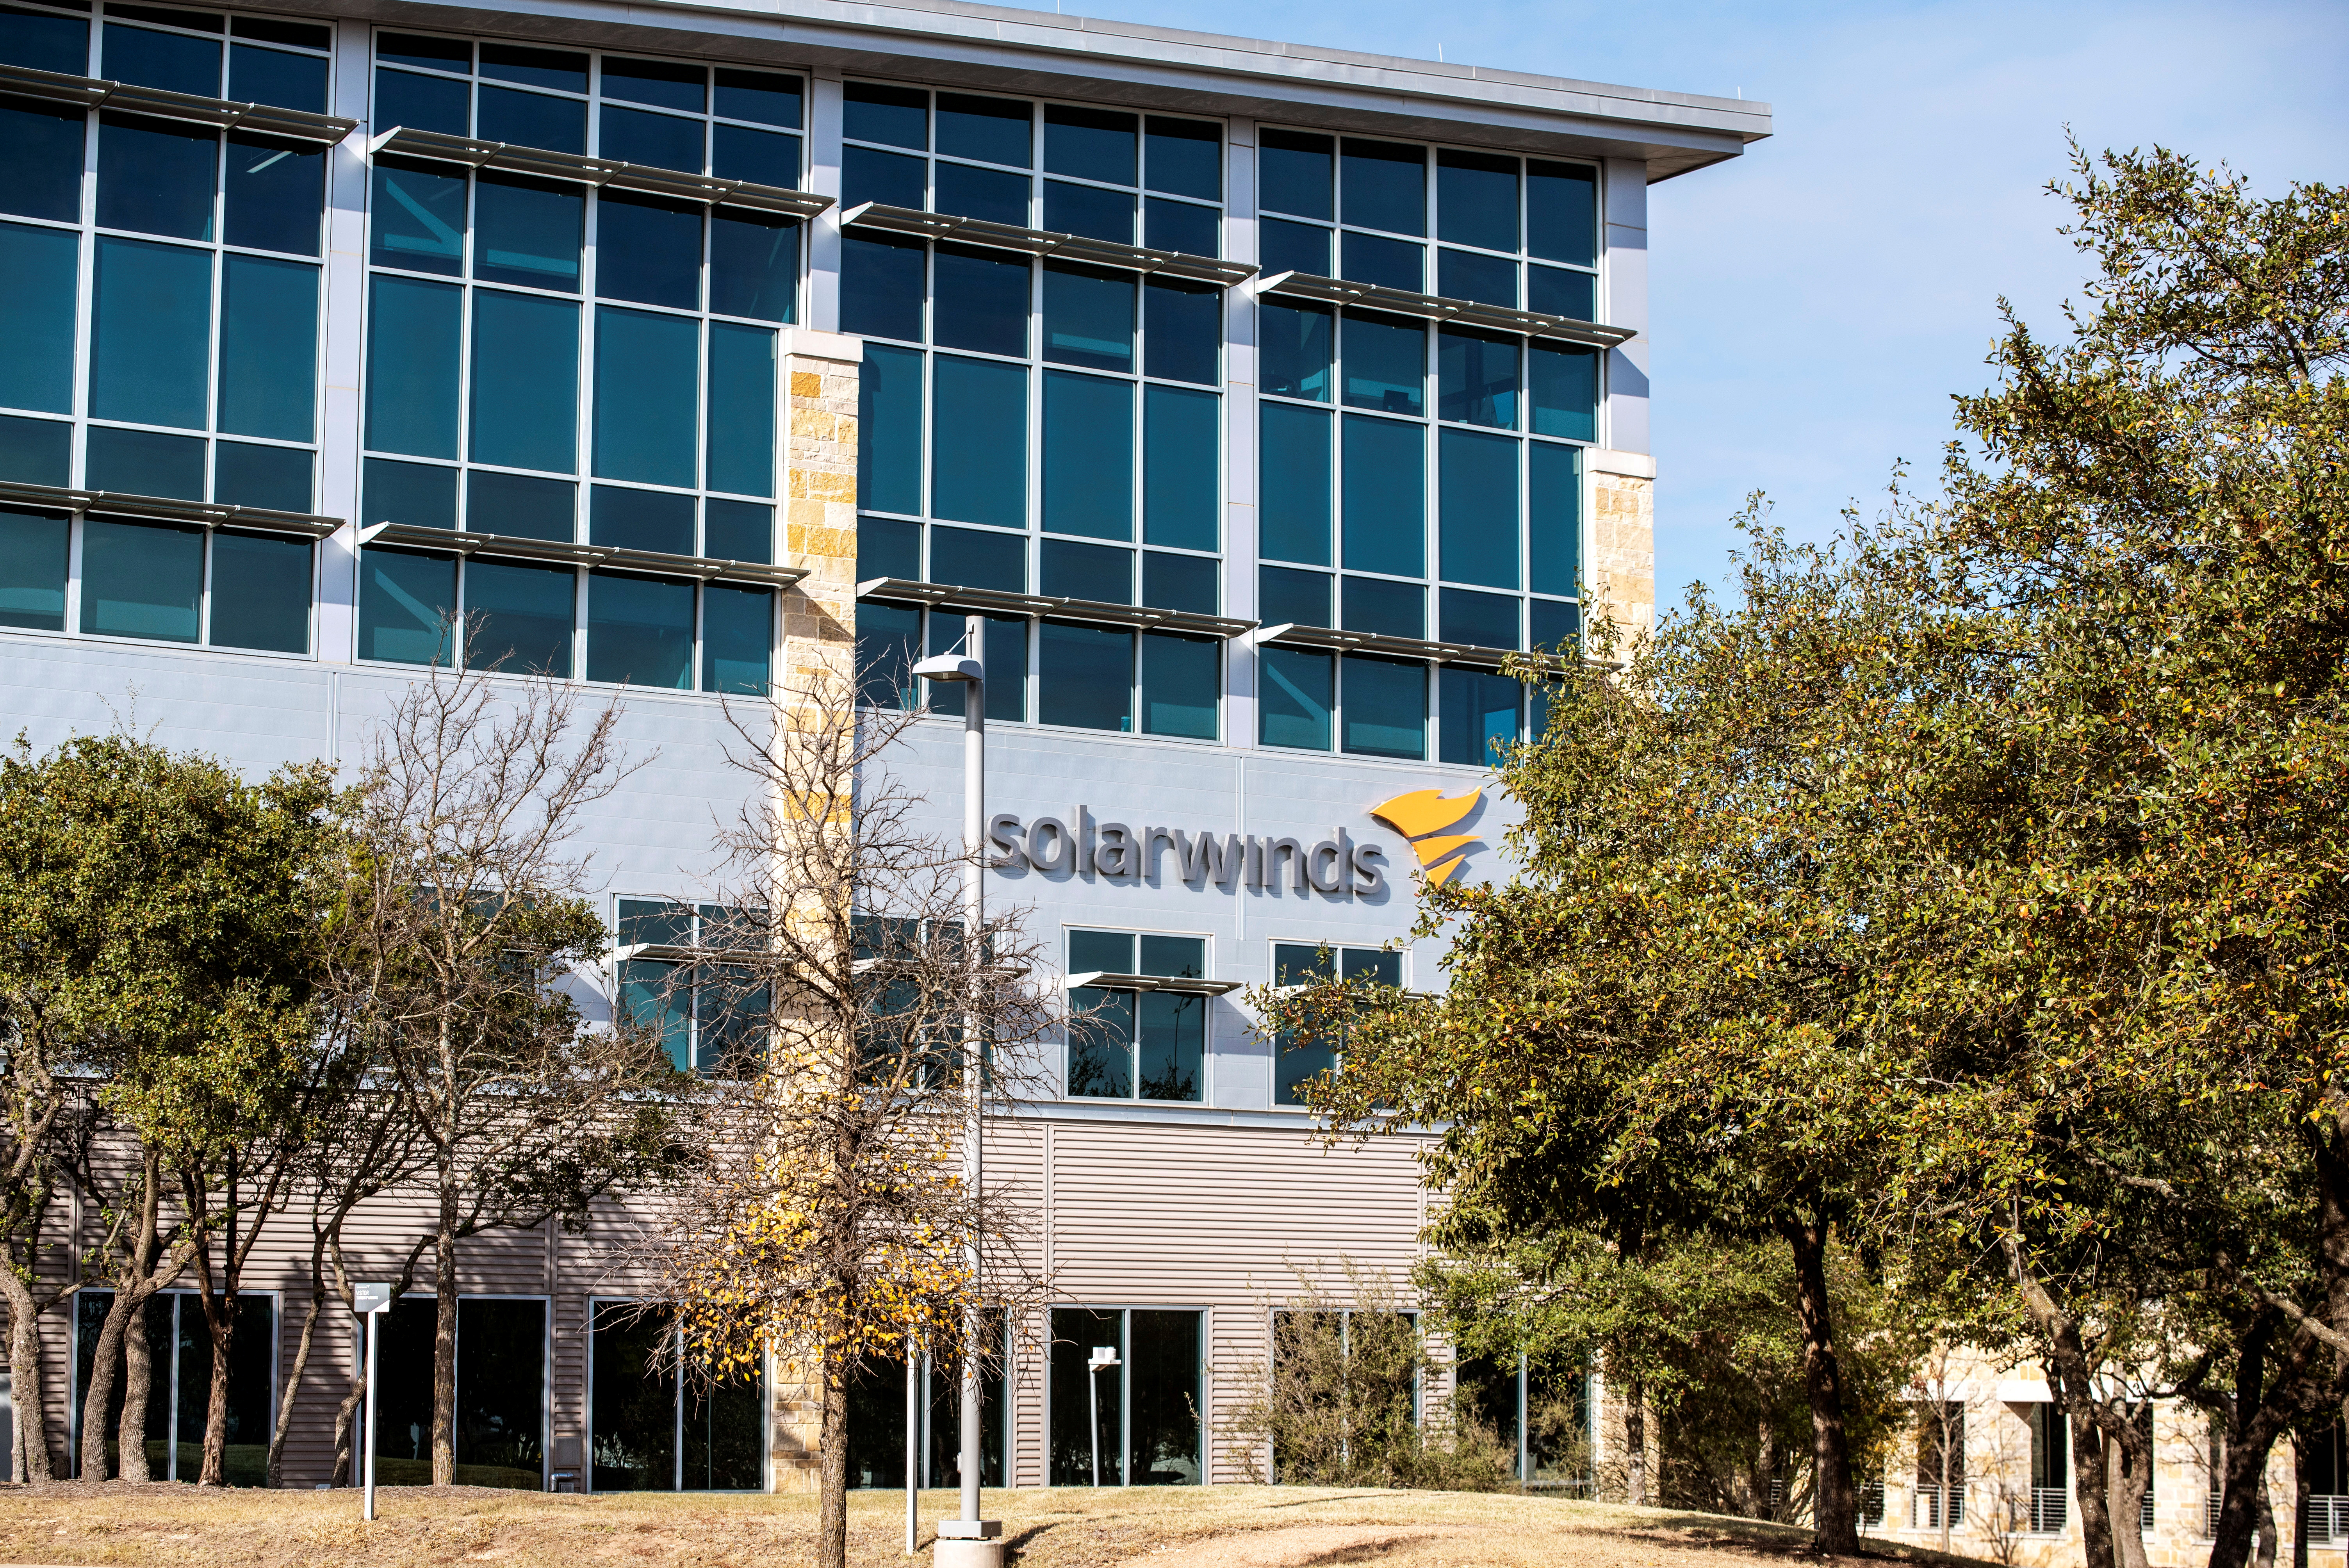 The SolarWinds headquarters are seen in Austin, Texas, U.S., December 18, 2020. REUTERS/Sergio Flores/